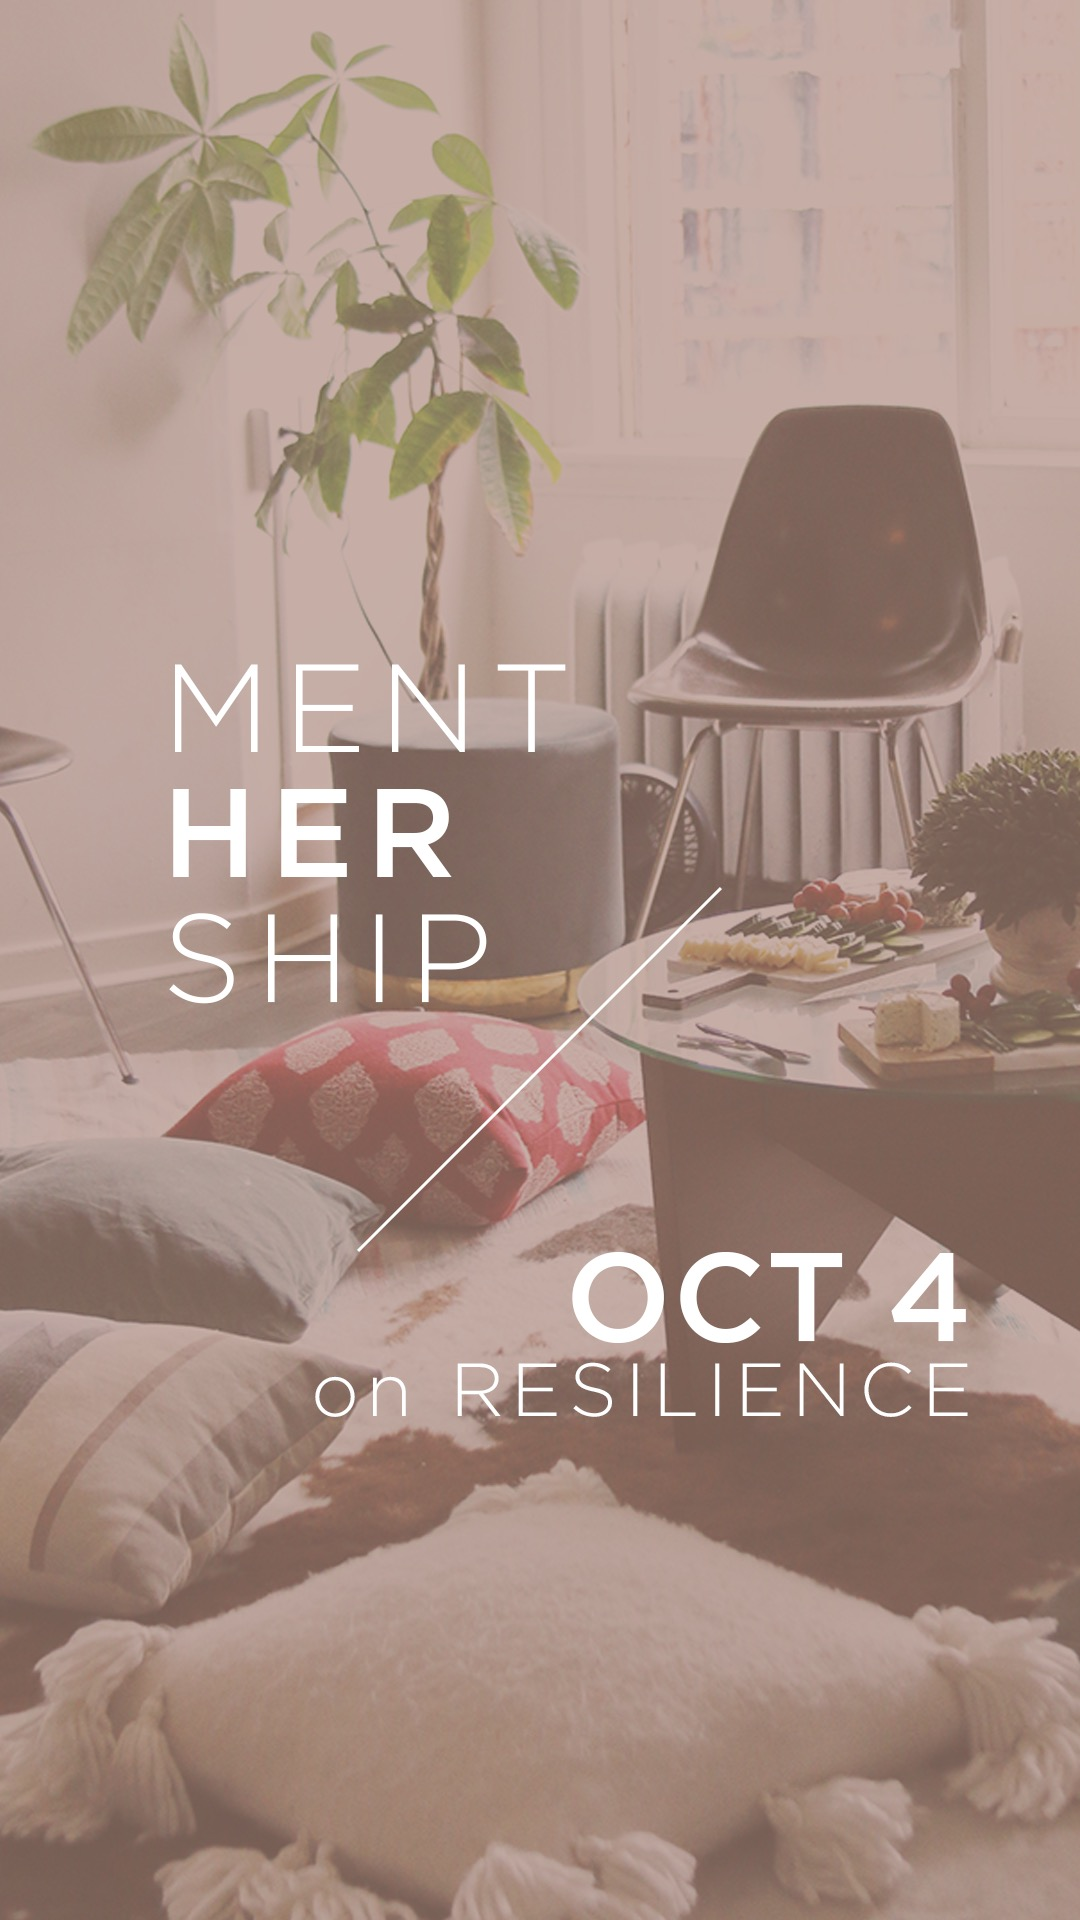 Session 2: Resilience. - Where: Contemporary Office Interiors // 1035 W Pender St.When: Thursday October 4th5:30PM-8:00PMWe're BACK.Details: A sip + share event about overcoming personal and professional obstacles and coming out the other side stronger and savvier than before. Our speaker is the incredible + hilarious founder of Eastwood X, Jillian Sheridan.Entrepreneur, mother, and true bad-ass, Jill has faced many mountains and conquered the art of resilience.Bring your unique spirit and we'll provide the spirits and light snacks!All proceeds go to One Girl Can charity with the hopes of sponsoring a university student by 2019.Get your tickets here.